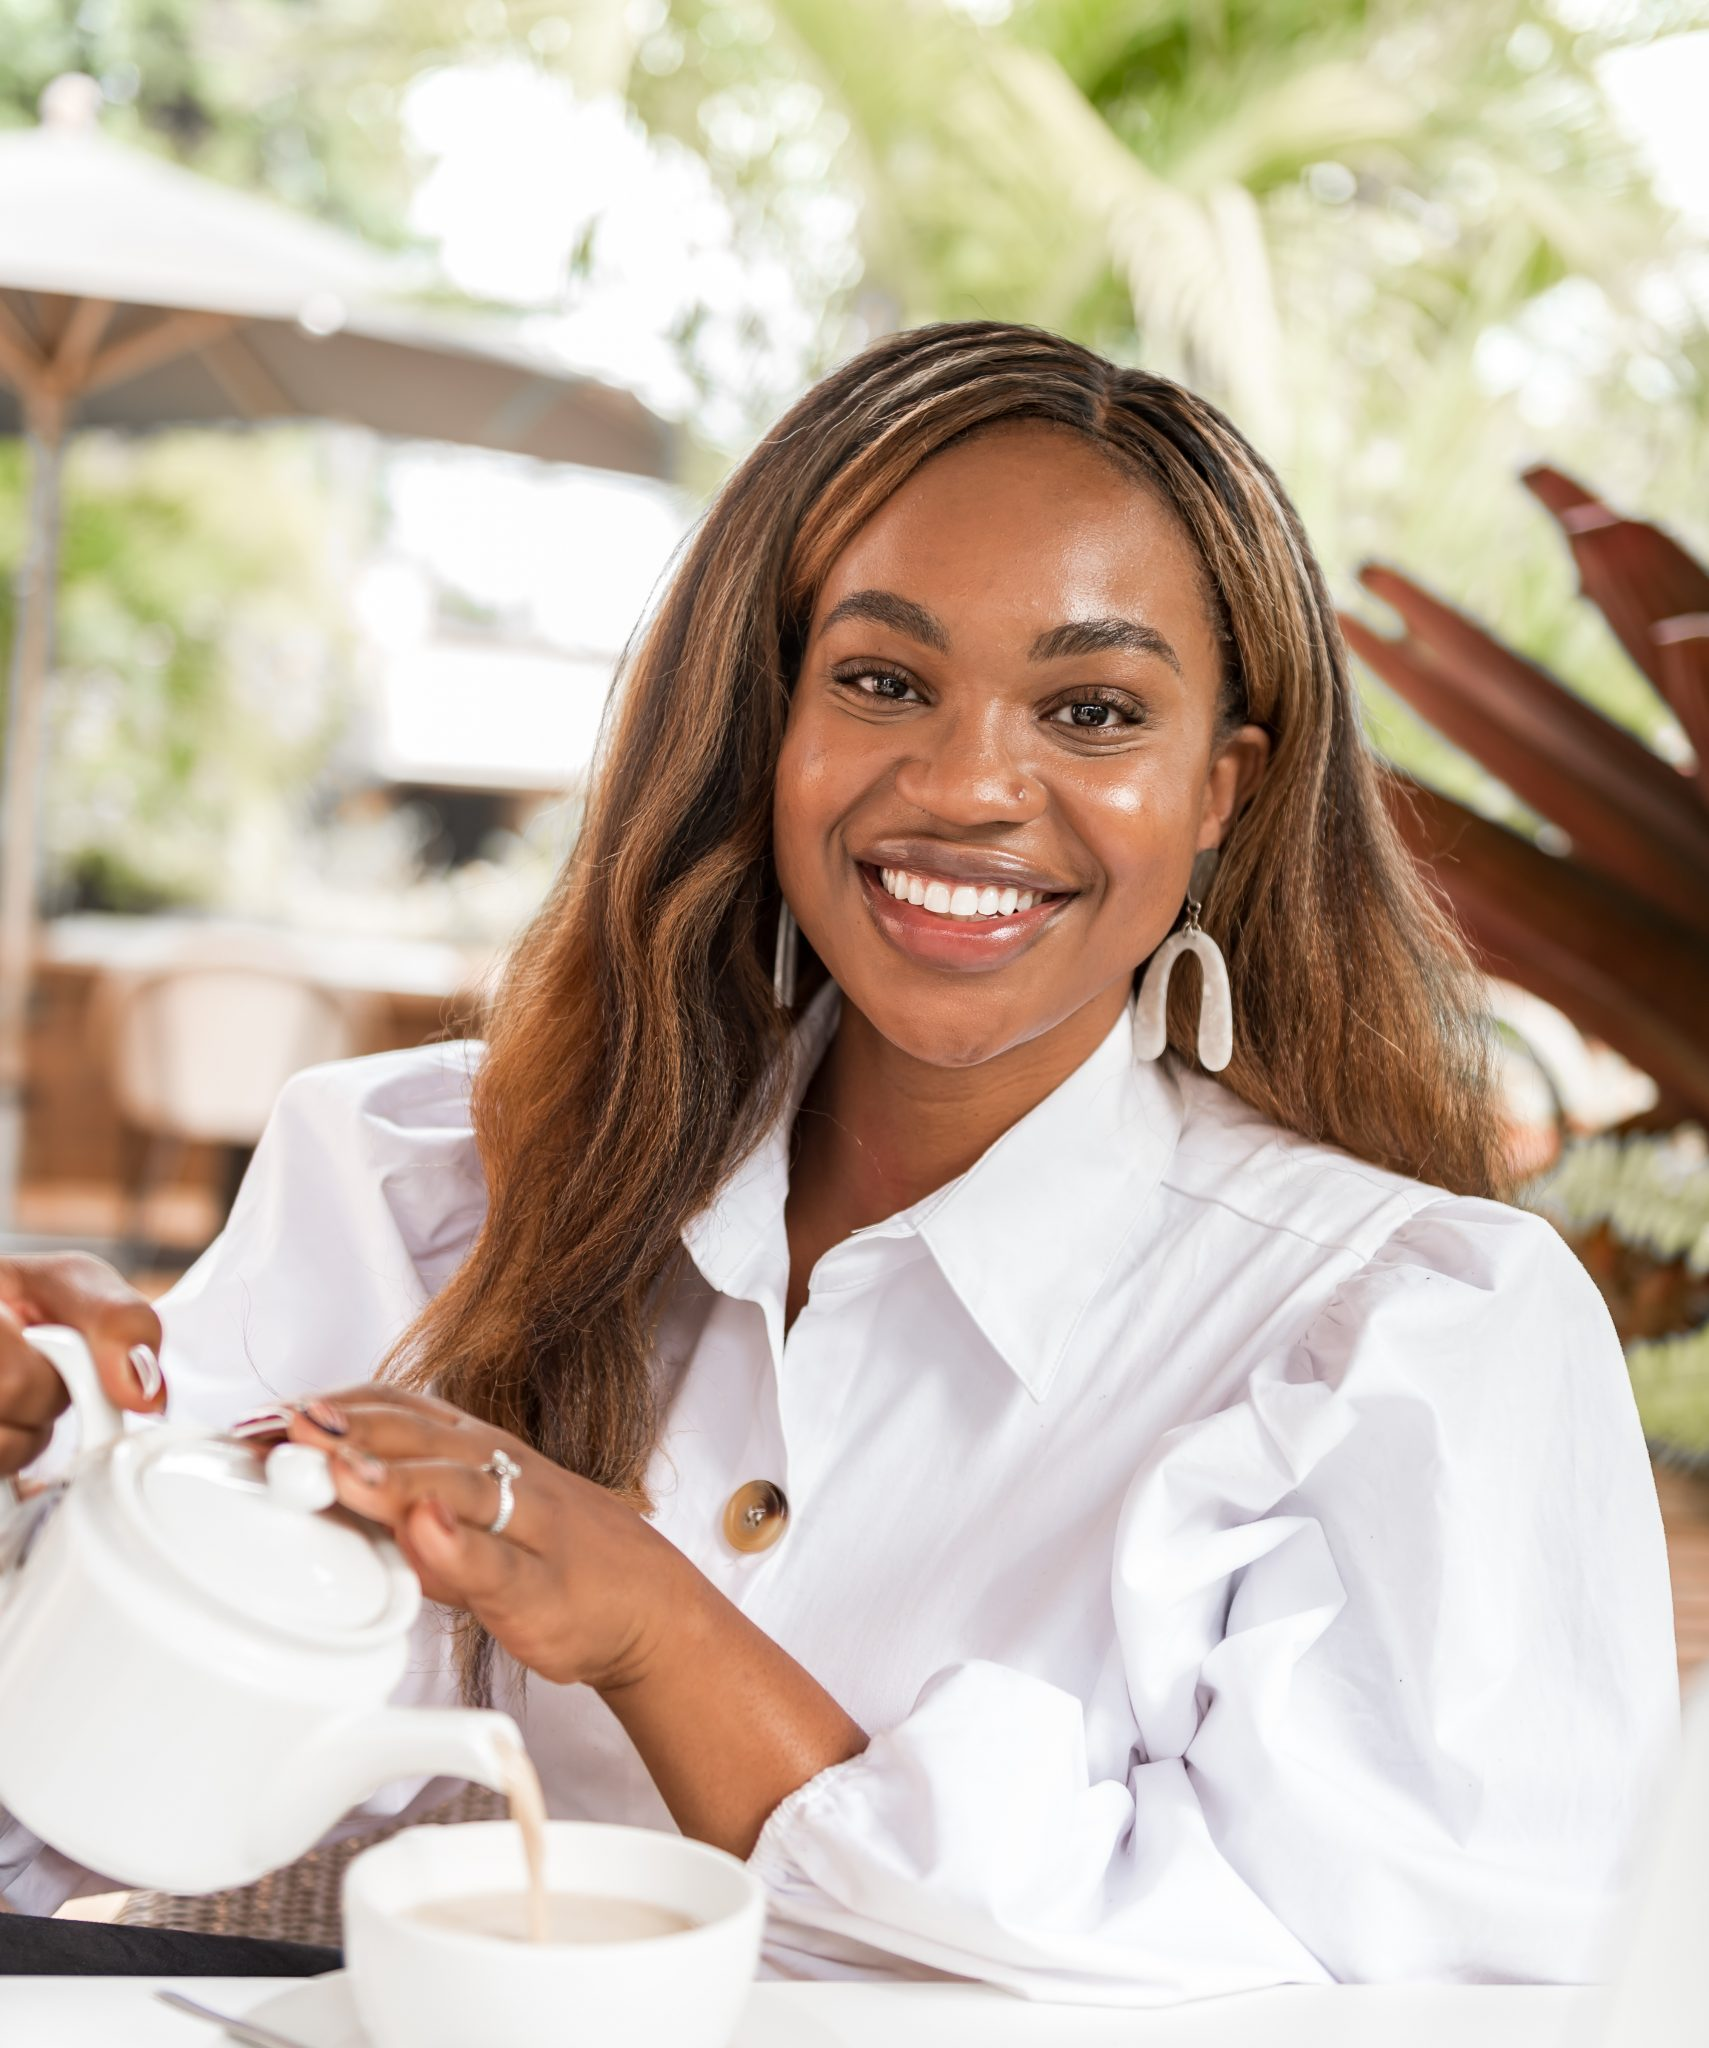 Ijeoma Kola smiling as she pour tea into tea cup at a café